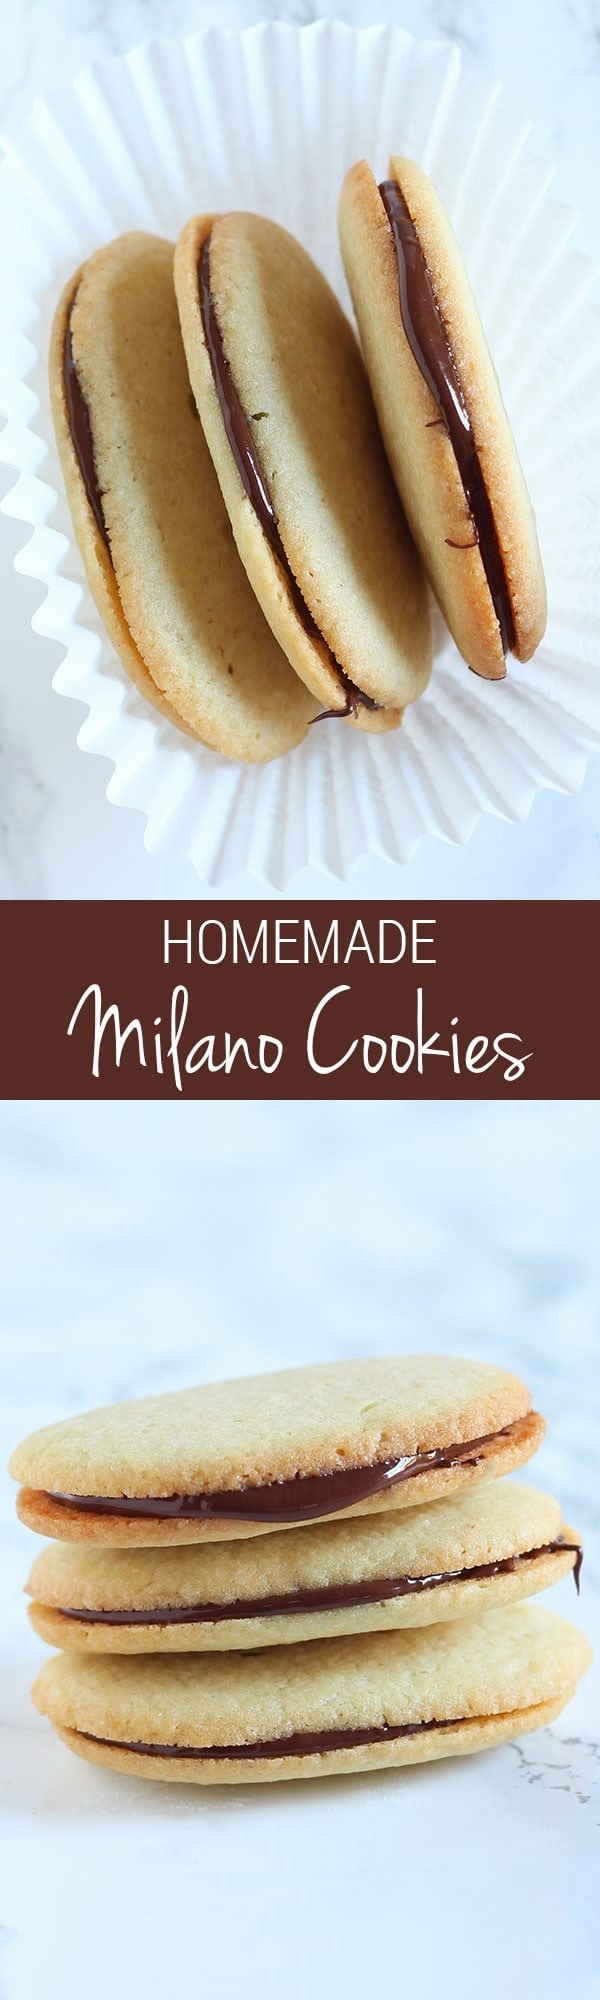 Impress your friends with these Homemade Milano Cookies! They're even better than store-bought and surprisingly simple to make. YUM.